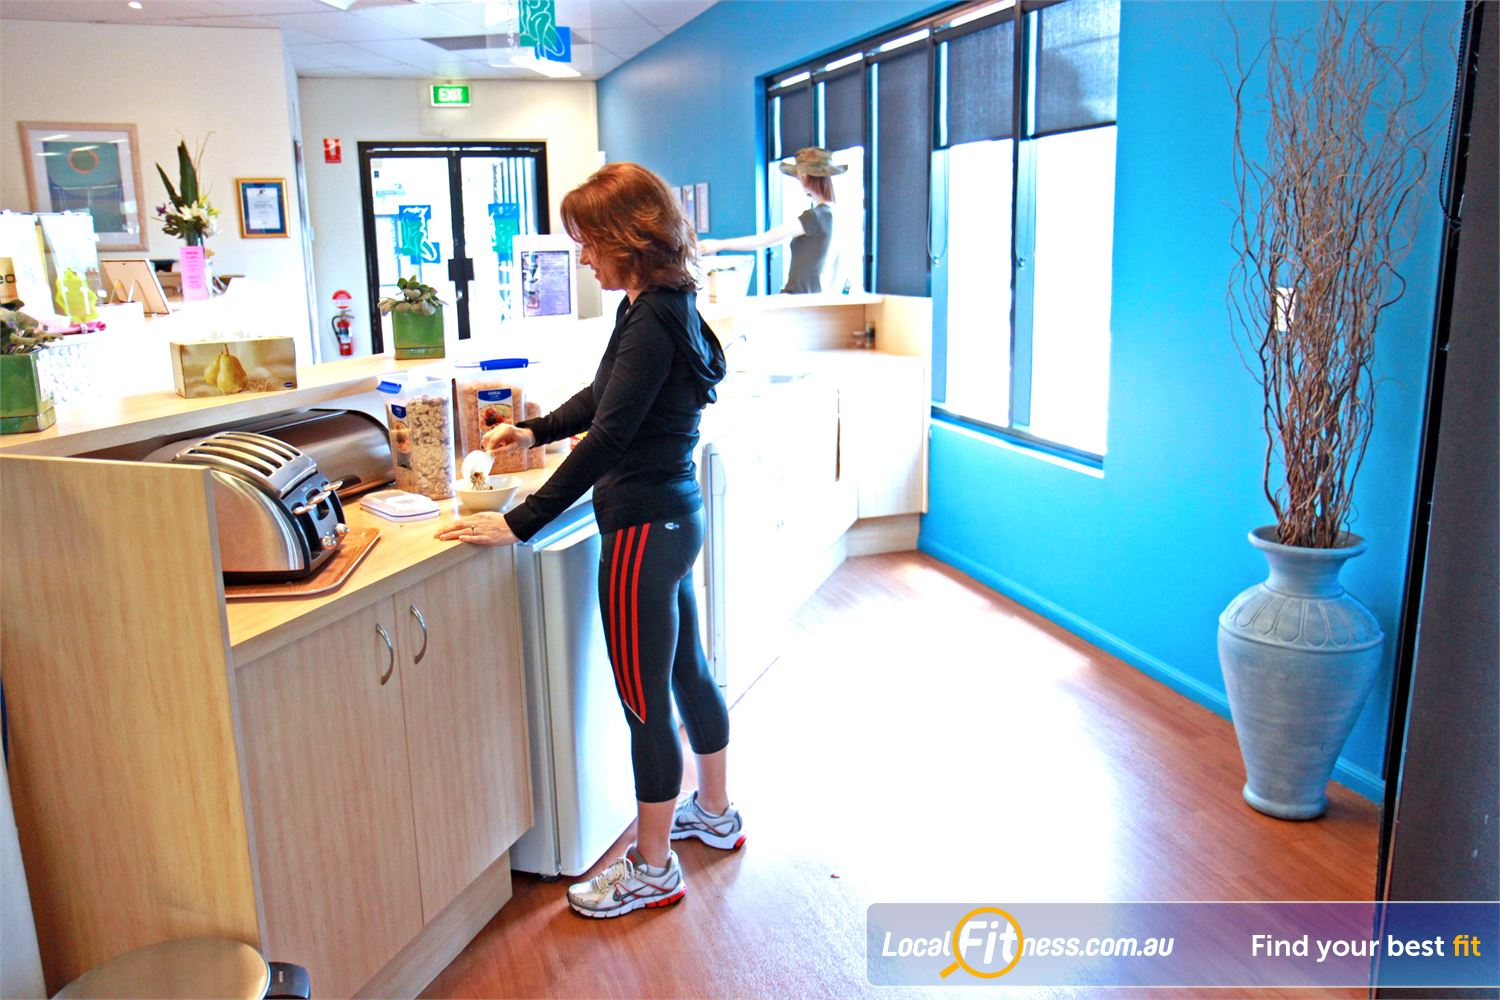 Fernwood Fitness Near Murrumba Downs Fresh fruit and coffee are provided at Fernwood's kitchen.